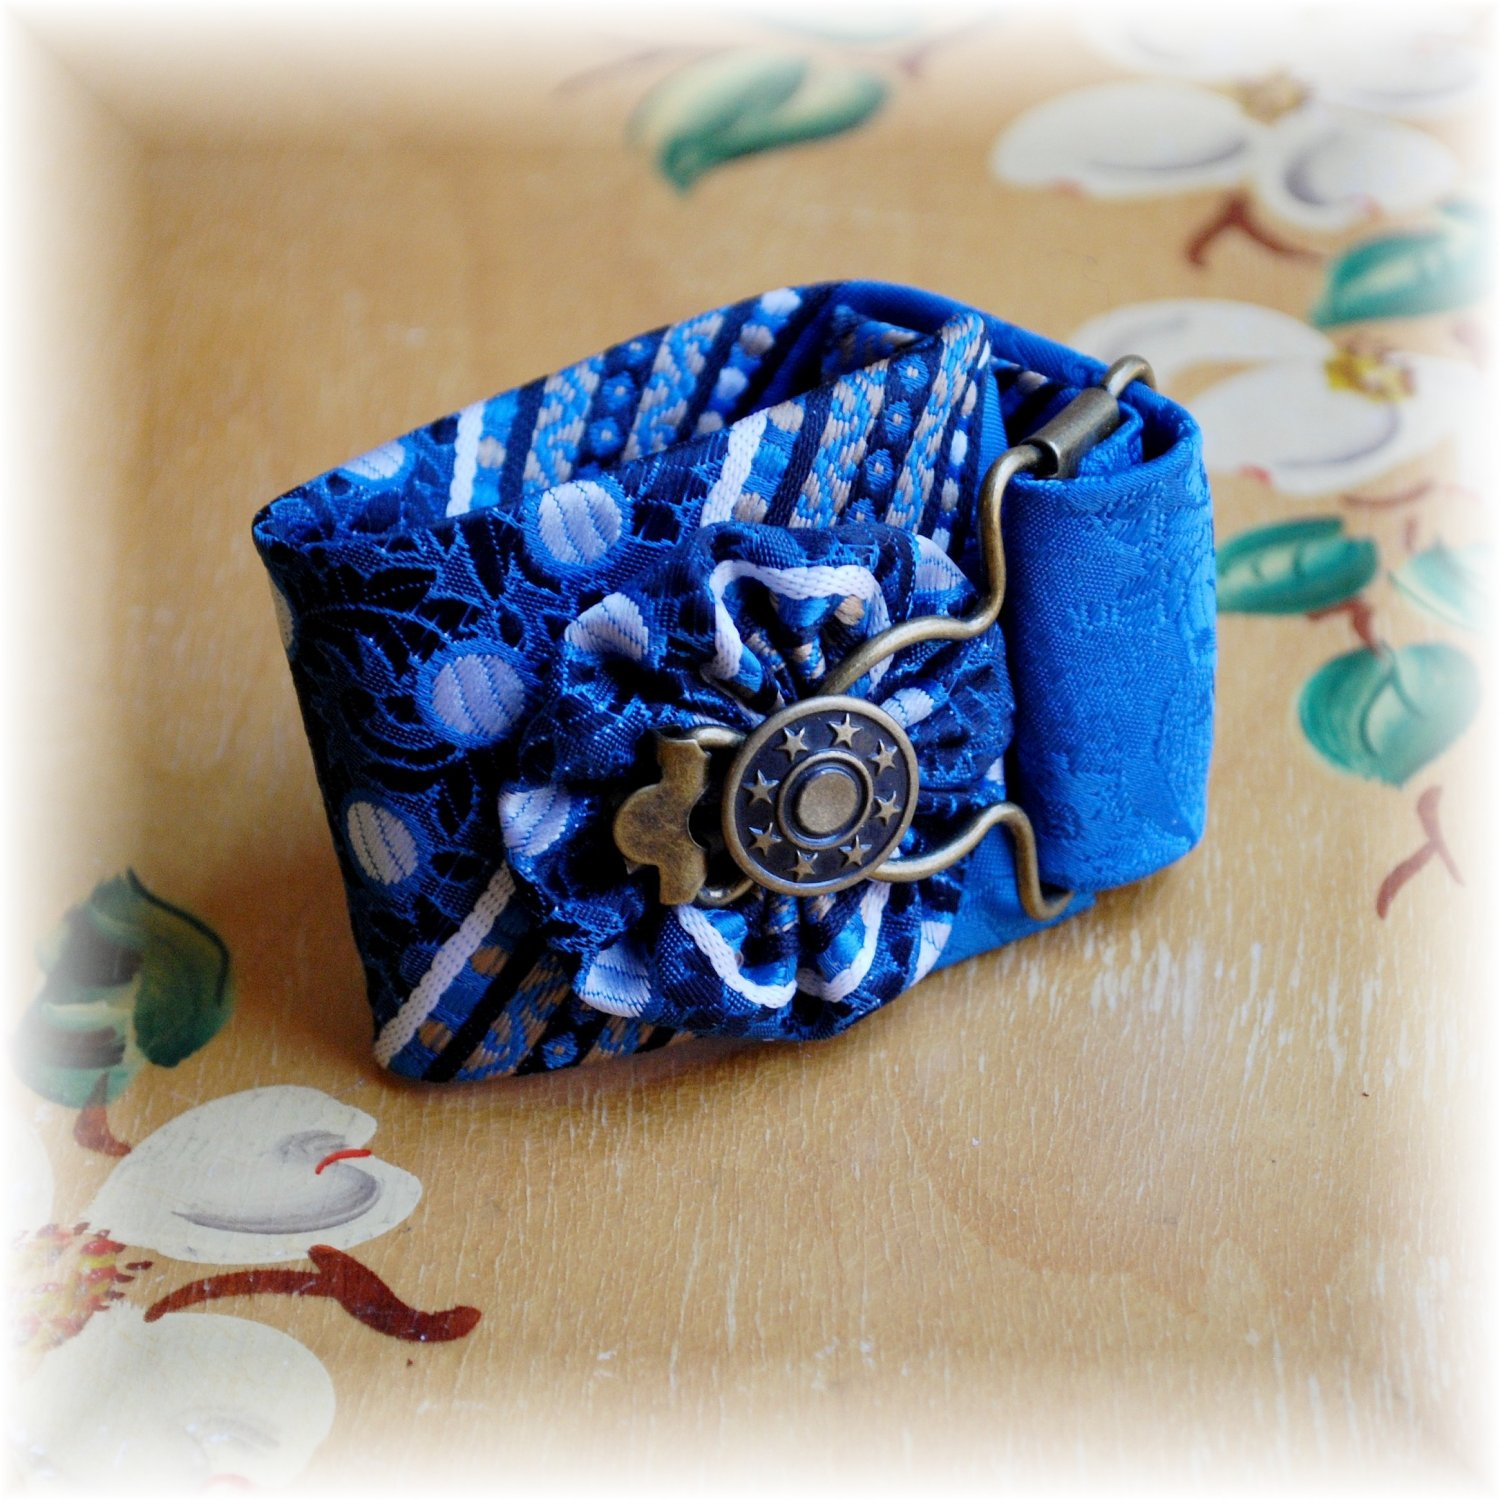 Bold Blue, White, & Black Vintage Neck Tie Cuff Bracelet; made by Ms. J